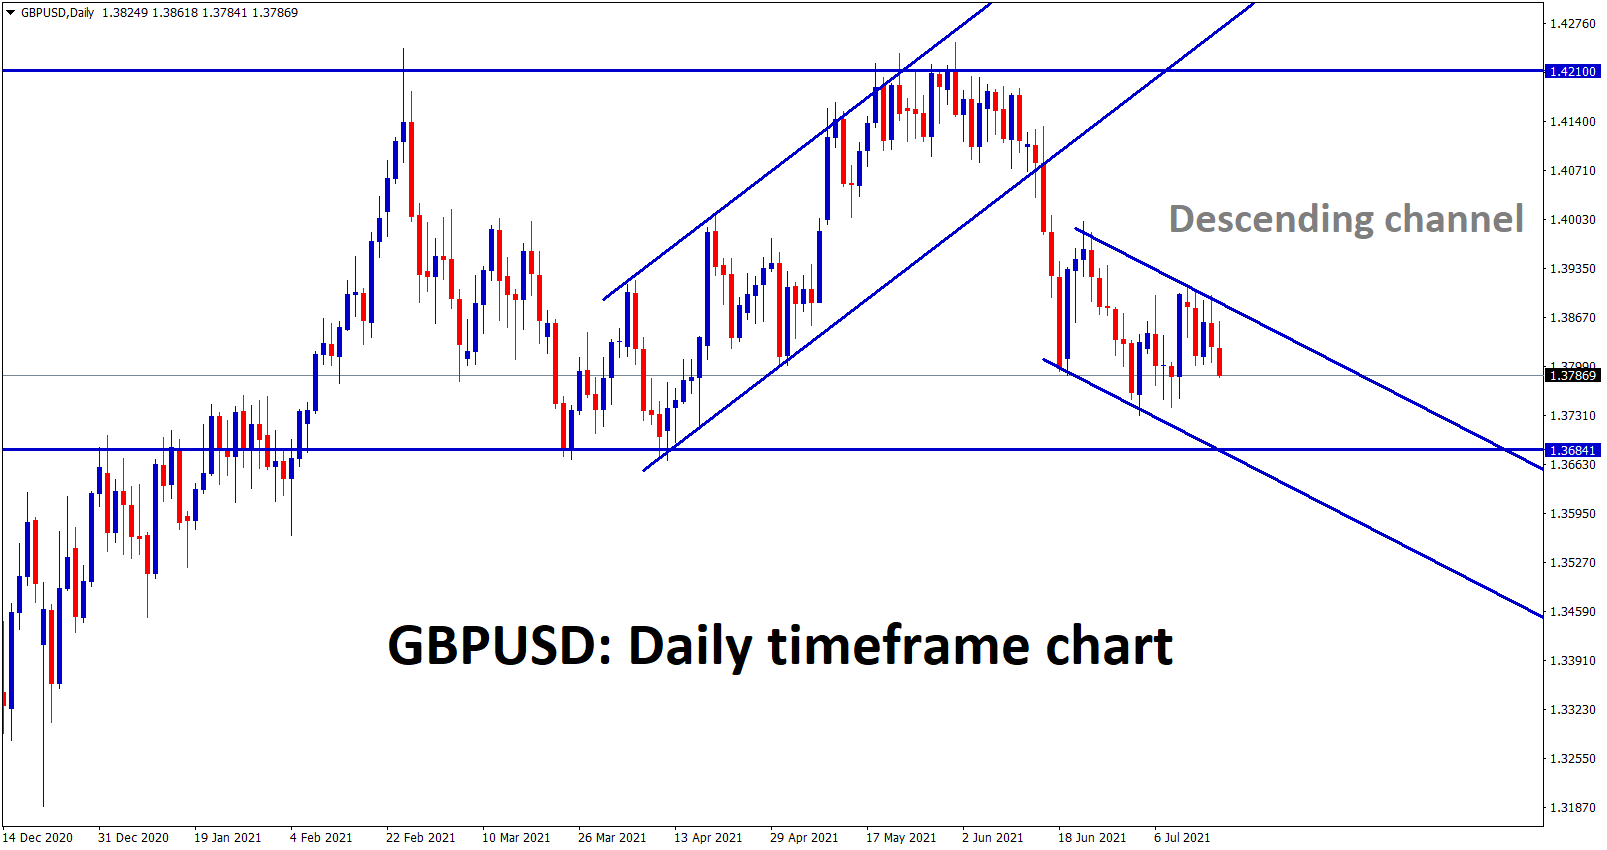 GBPUSD is moving in a descending channel right now which will lead the market to the support zone